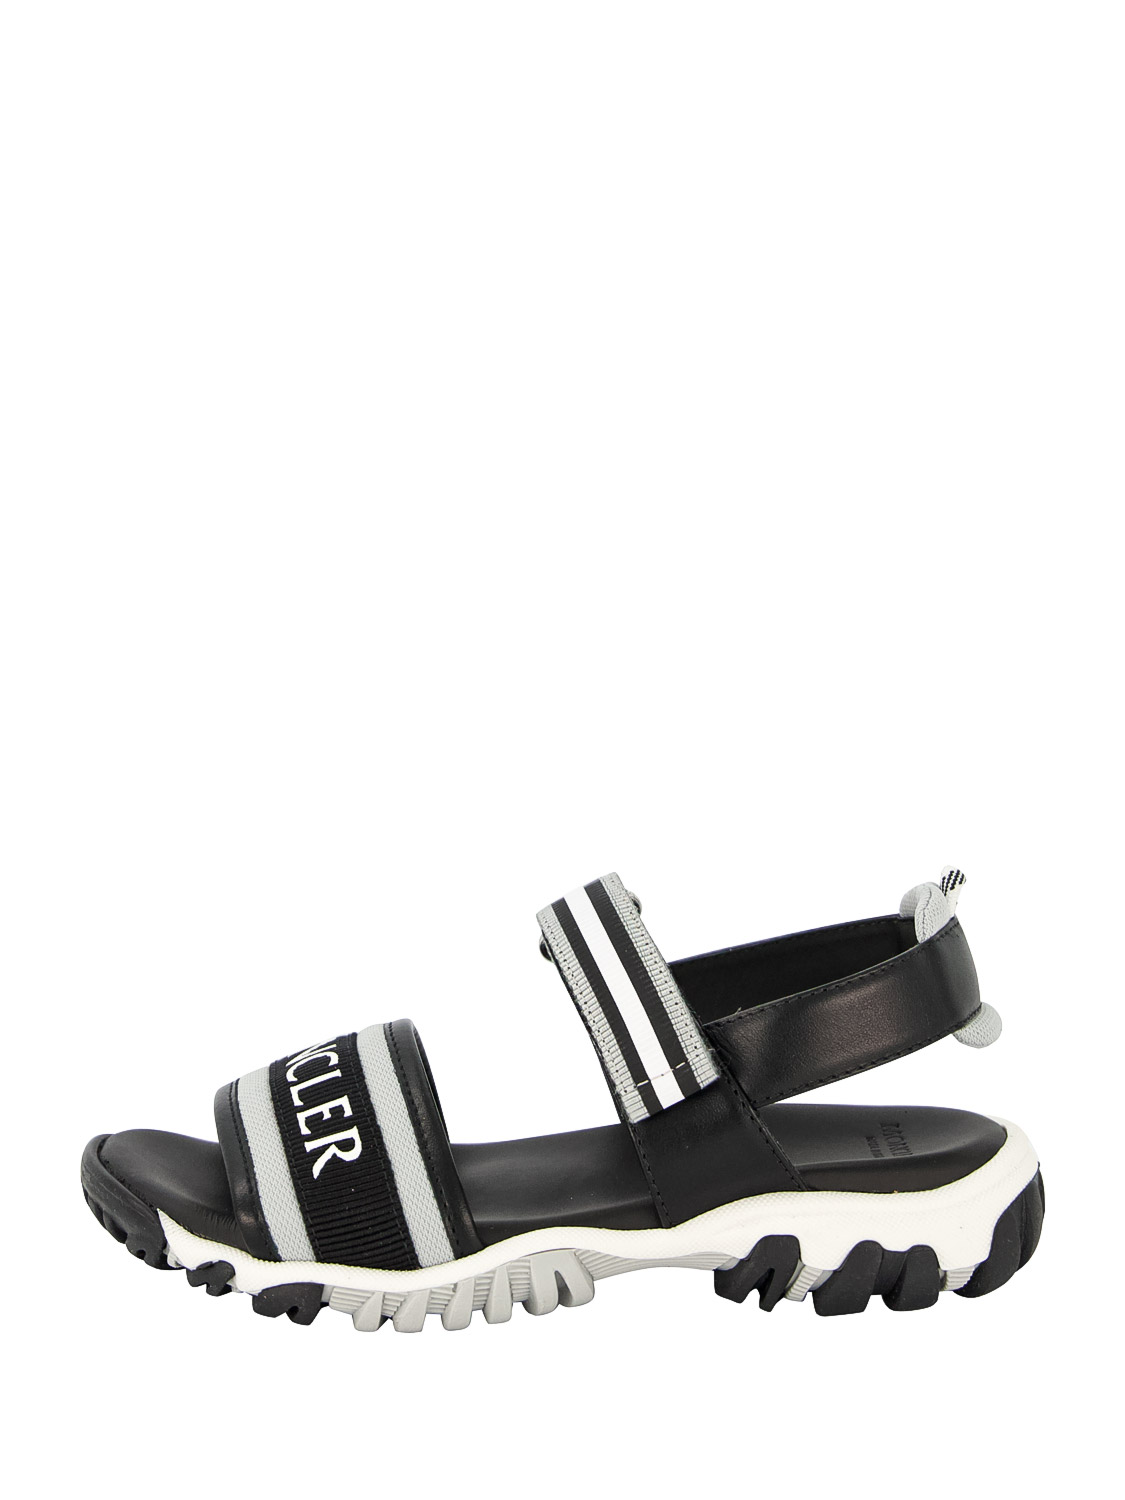 Moncler Leathers KIDS SANDALS SUNSET SANDALS FOR FOR BOYS AND FOR...